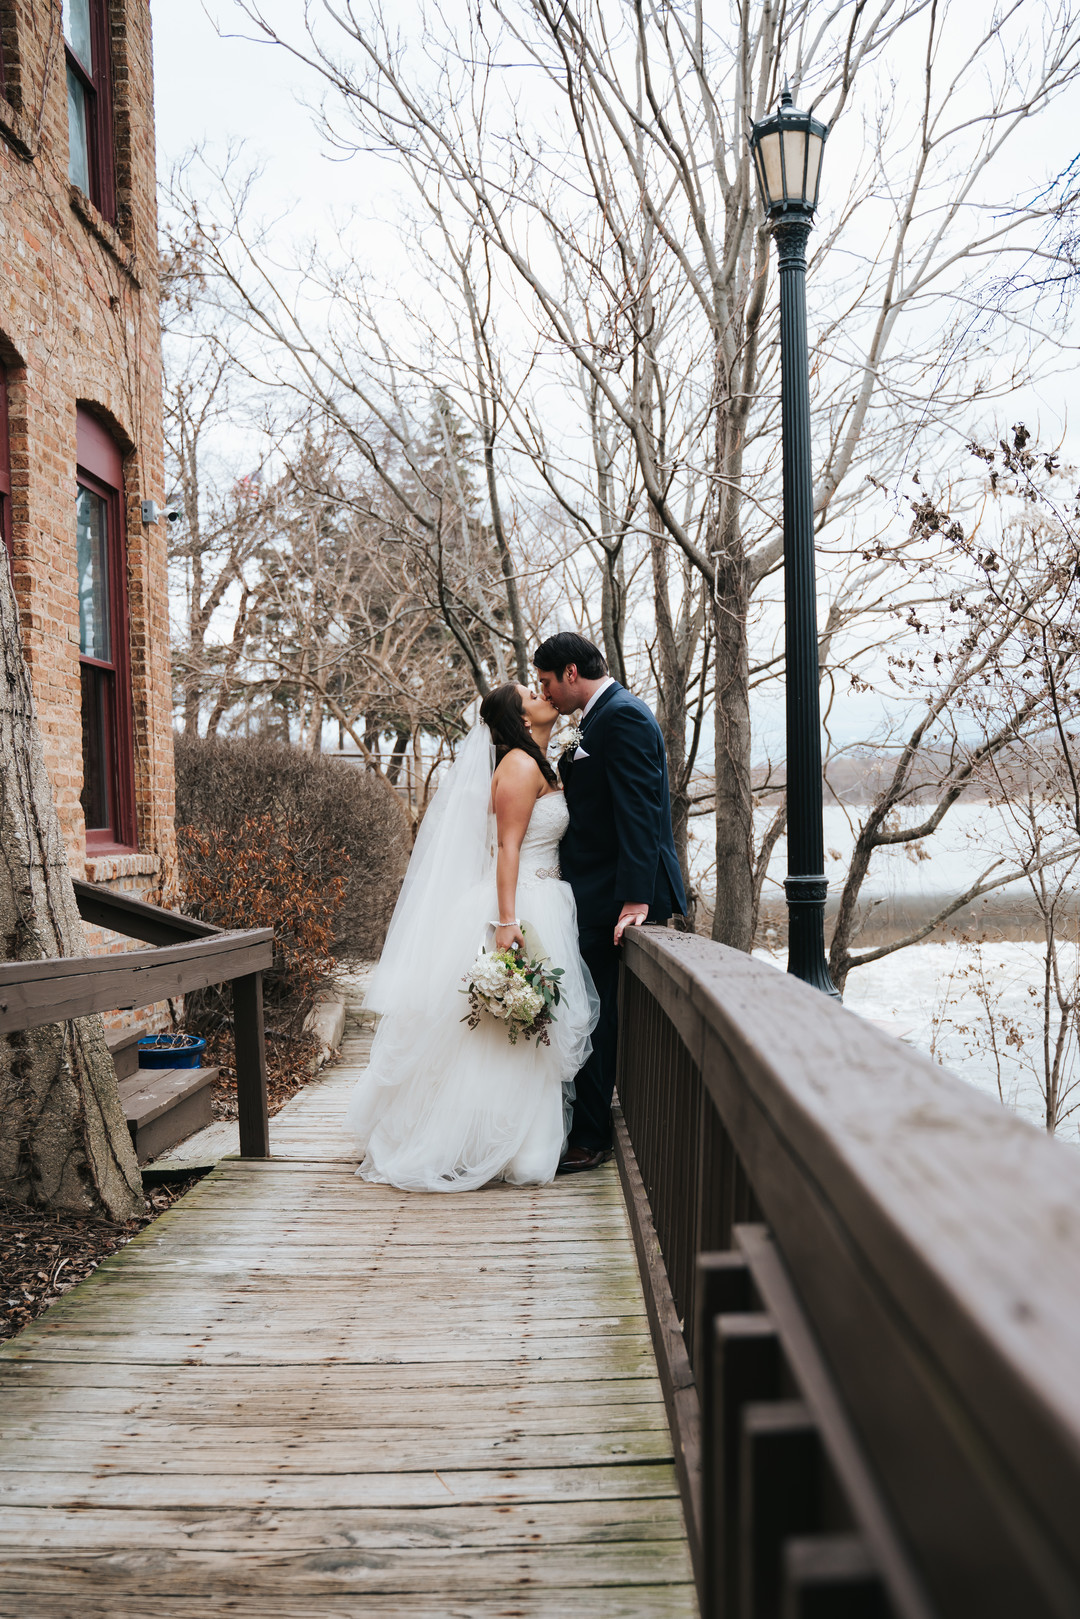 Outdoor wedding photos: Beautiful Illinois wedding at Riverside Receptions captured by Windy City Production. See more wedding ideas at CHItheeWED.com!